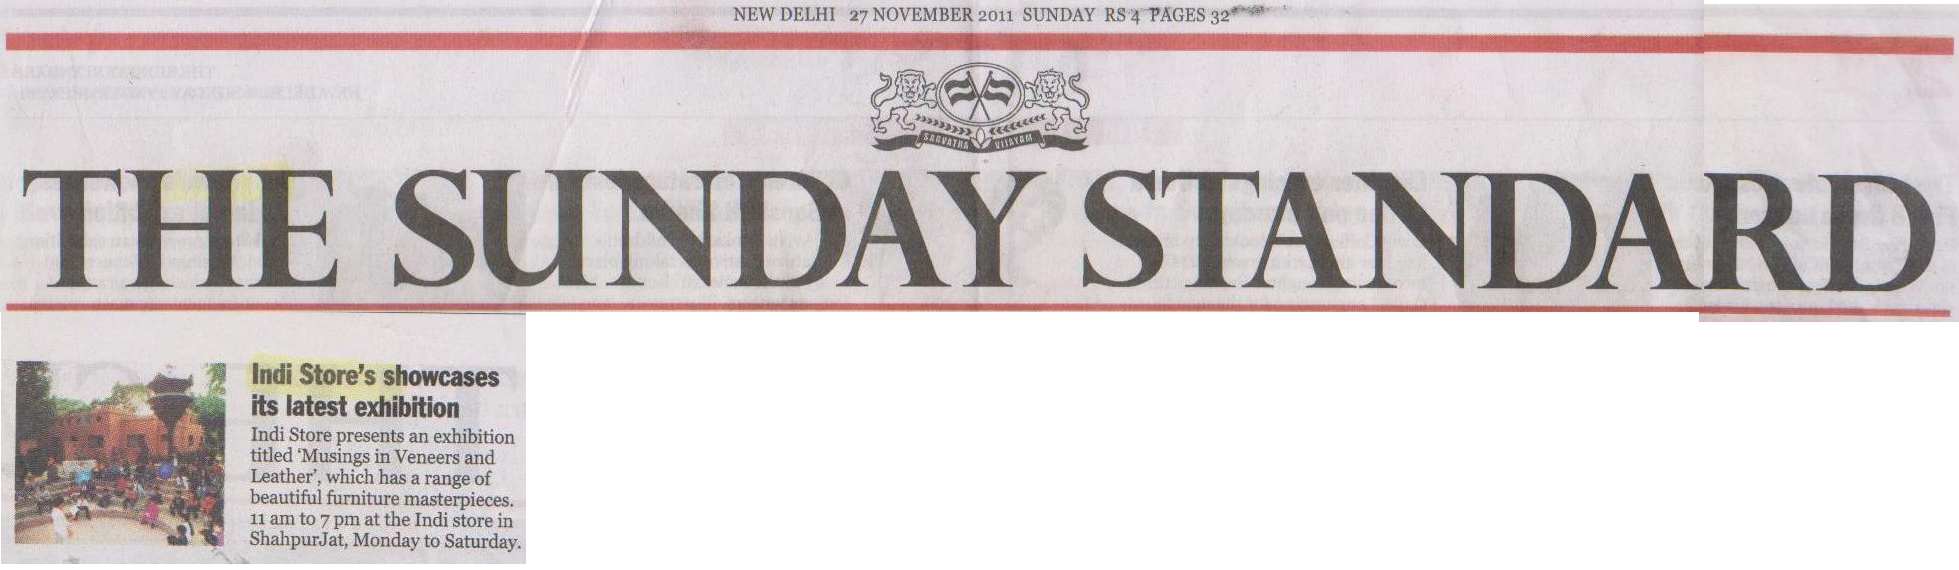 The Sunday Standard '11